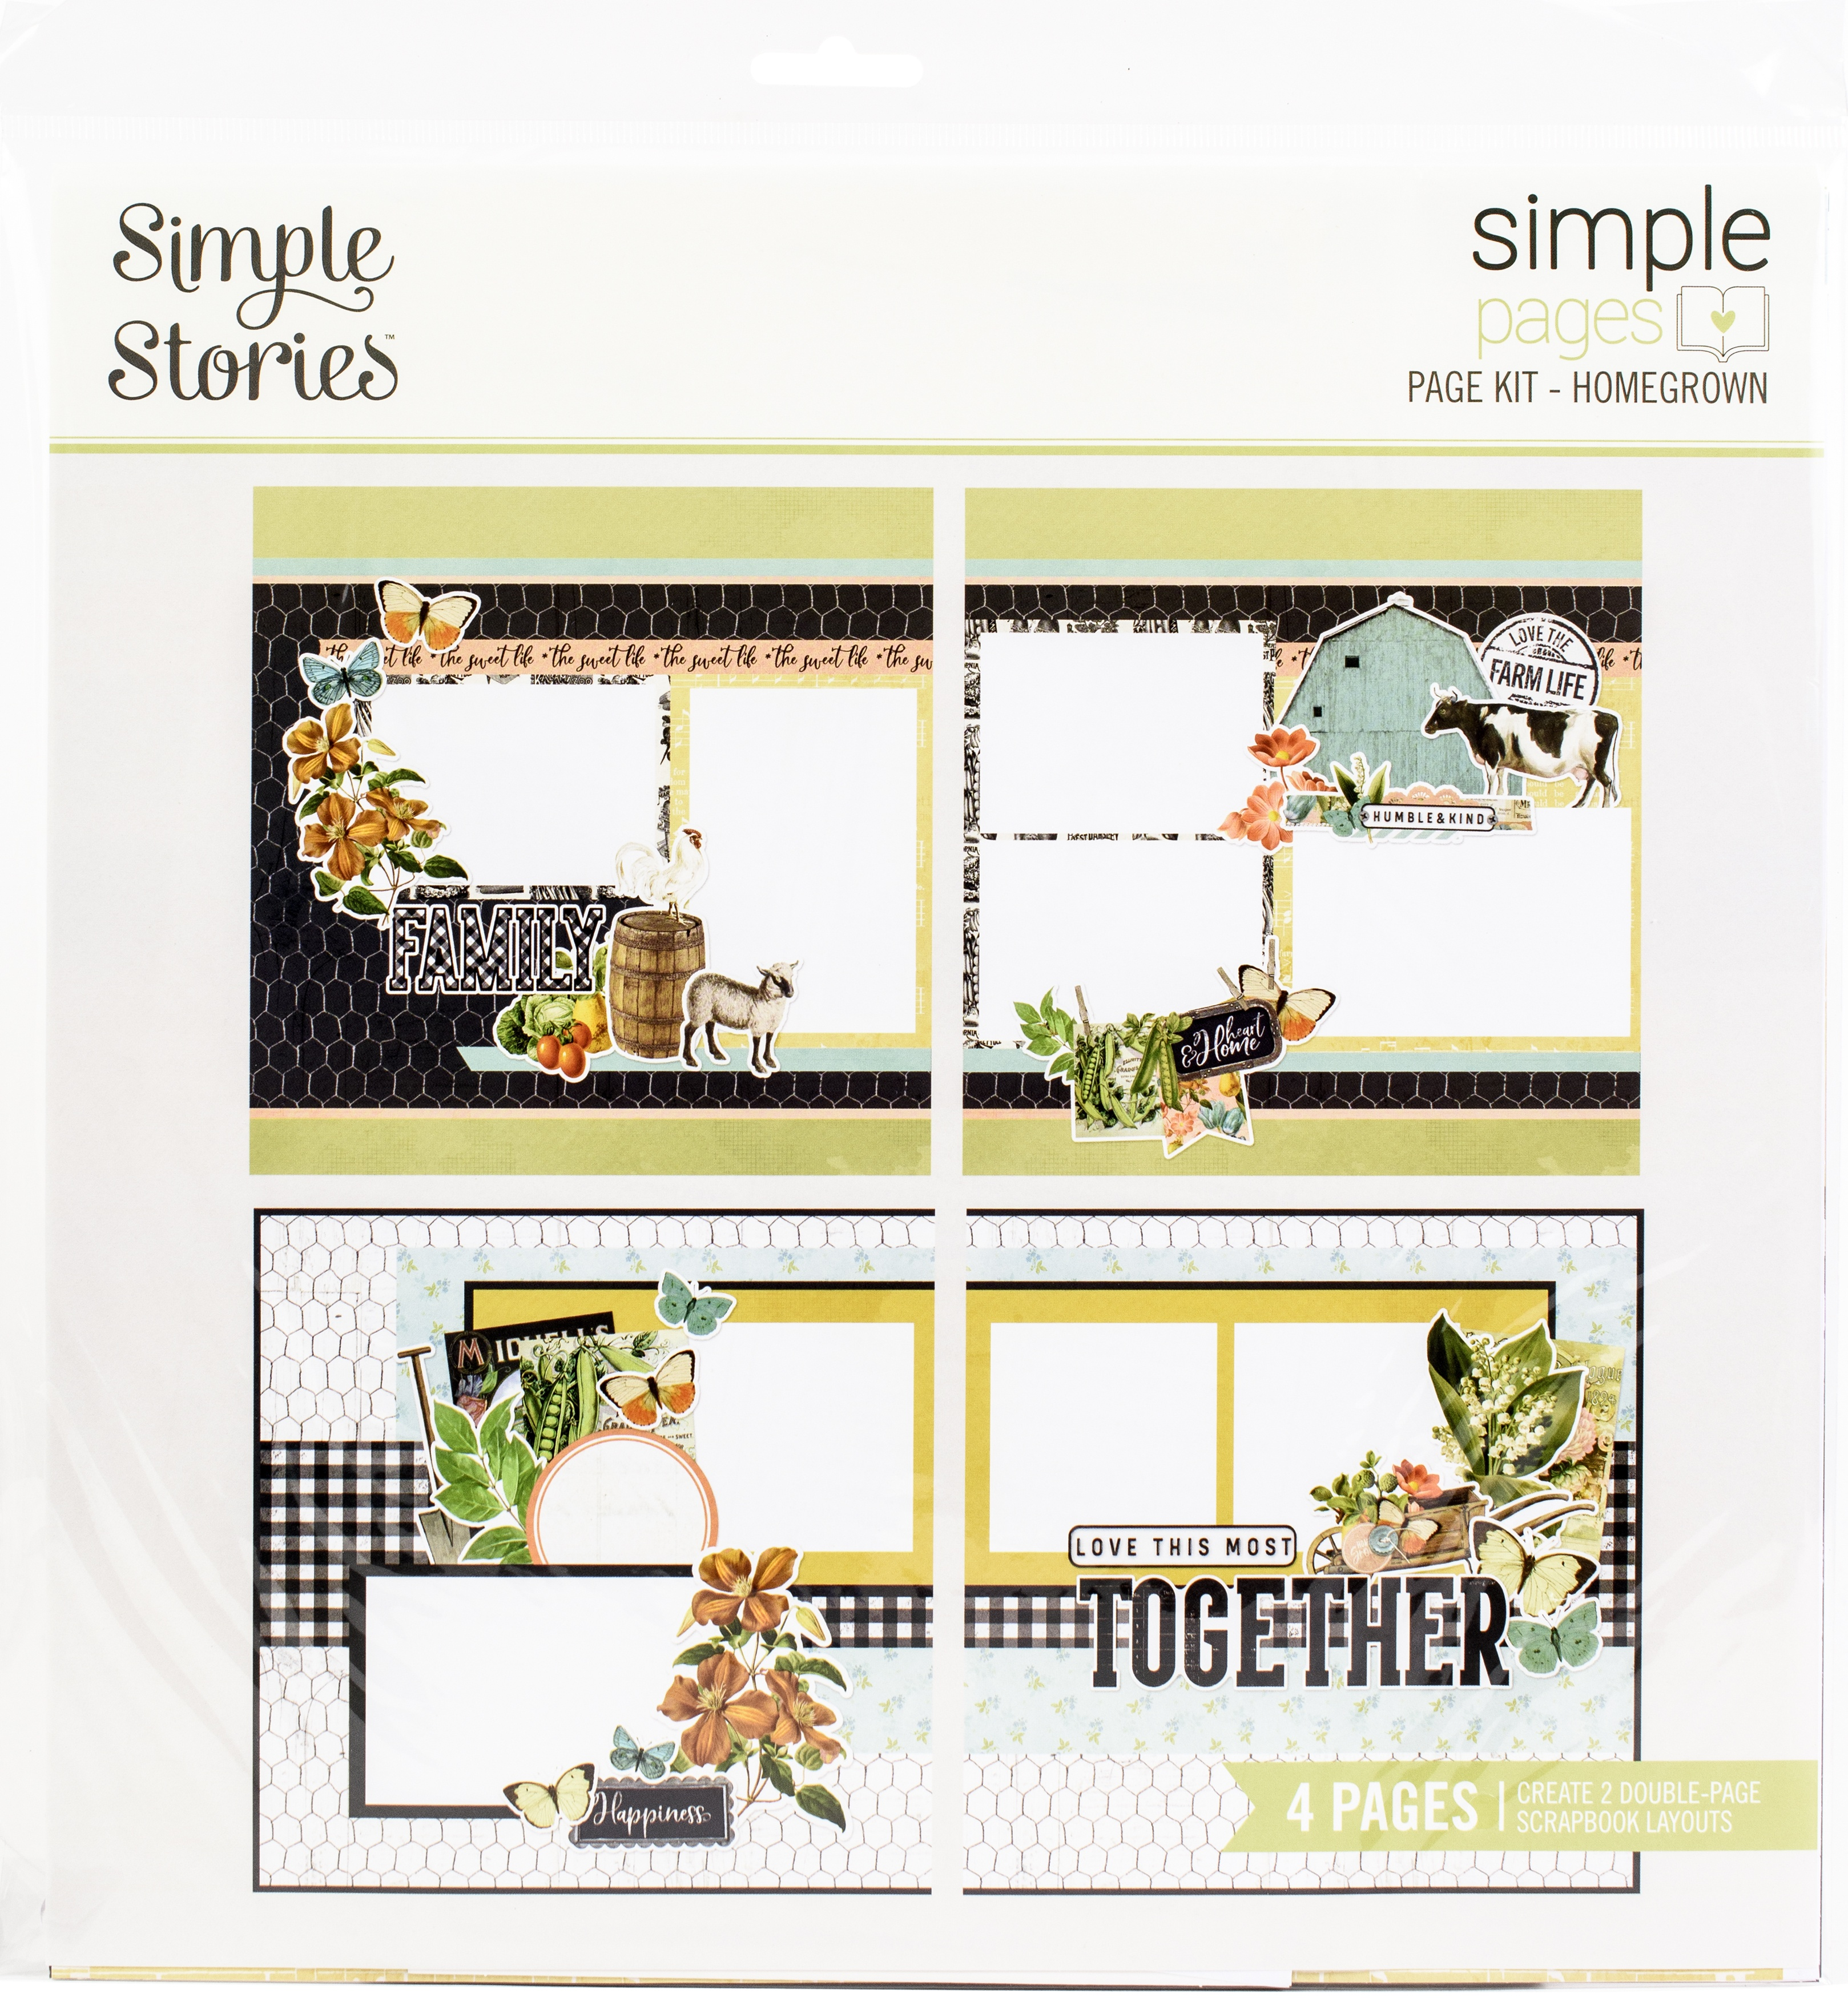 Simple Stories Simple Pages Page Kit-Homegrown, Farmhouse Garden